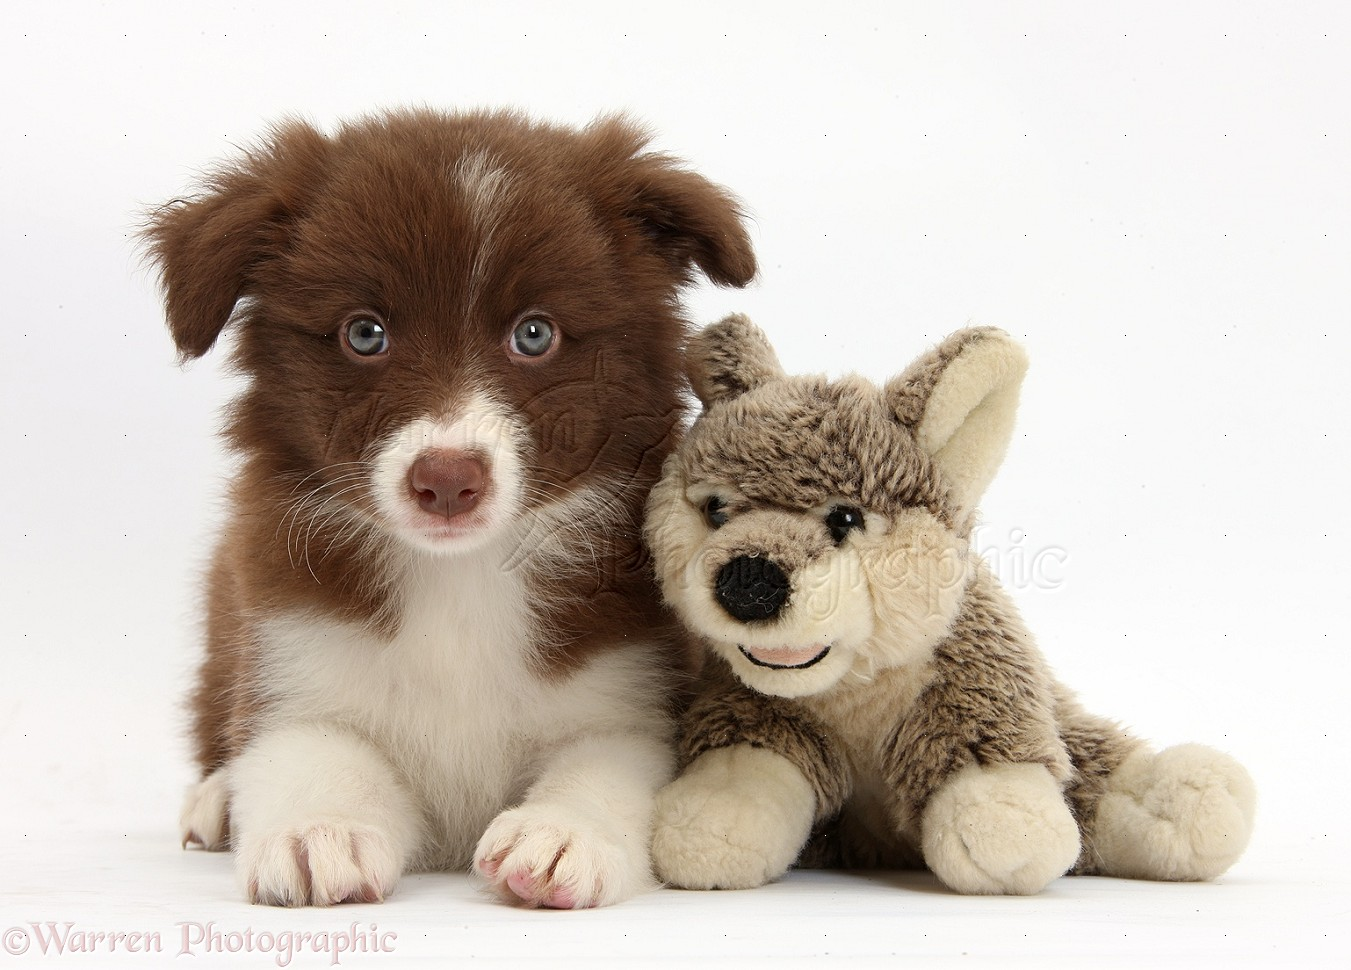 Dog: Chocolate Border Collie pup and wolf soft toy photo - WP36136